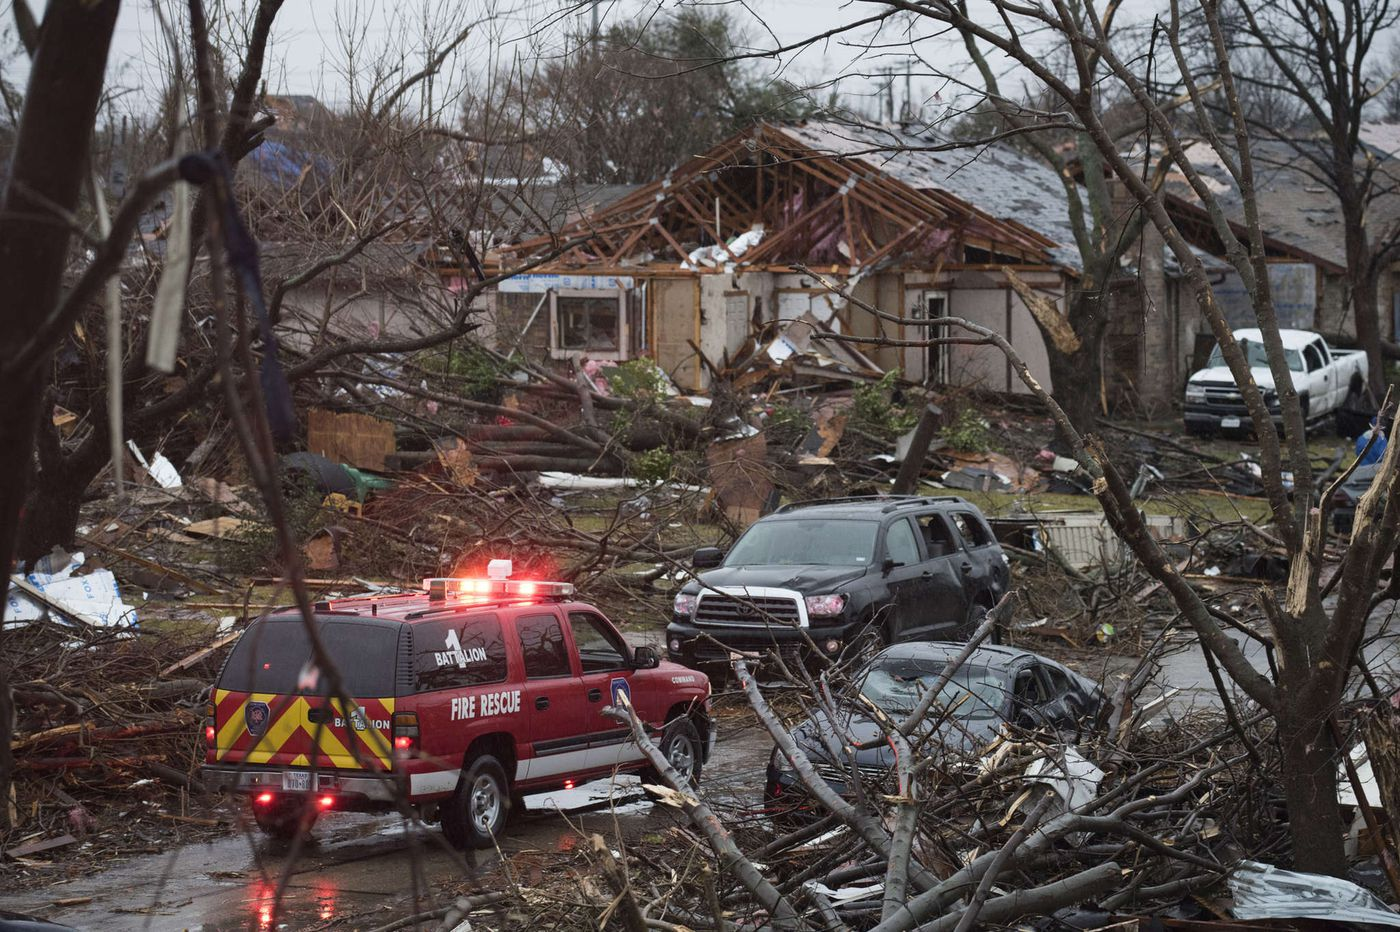 Tornadoes kill 11 in Texas; flooding claims 13 in Midwest